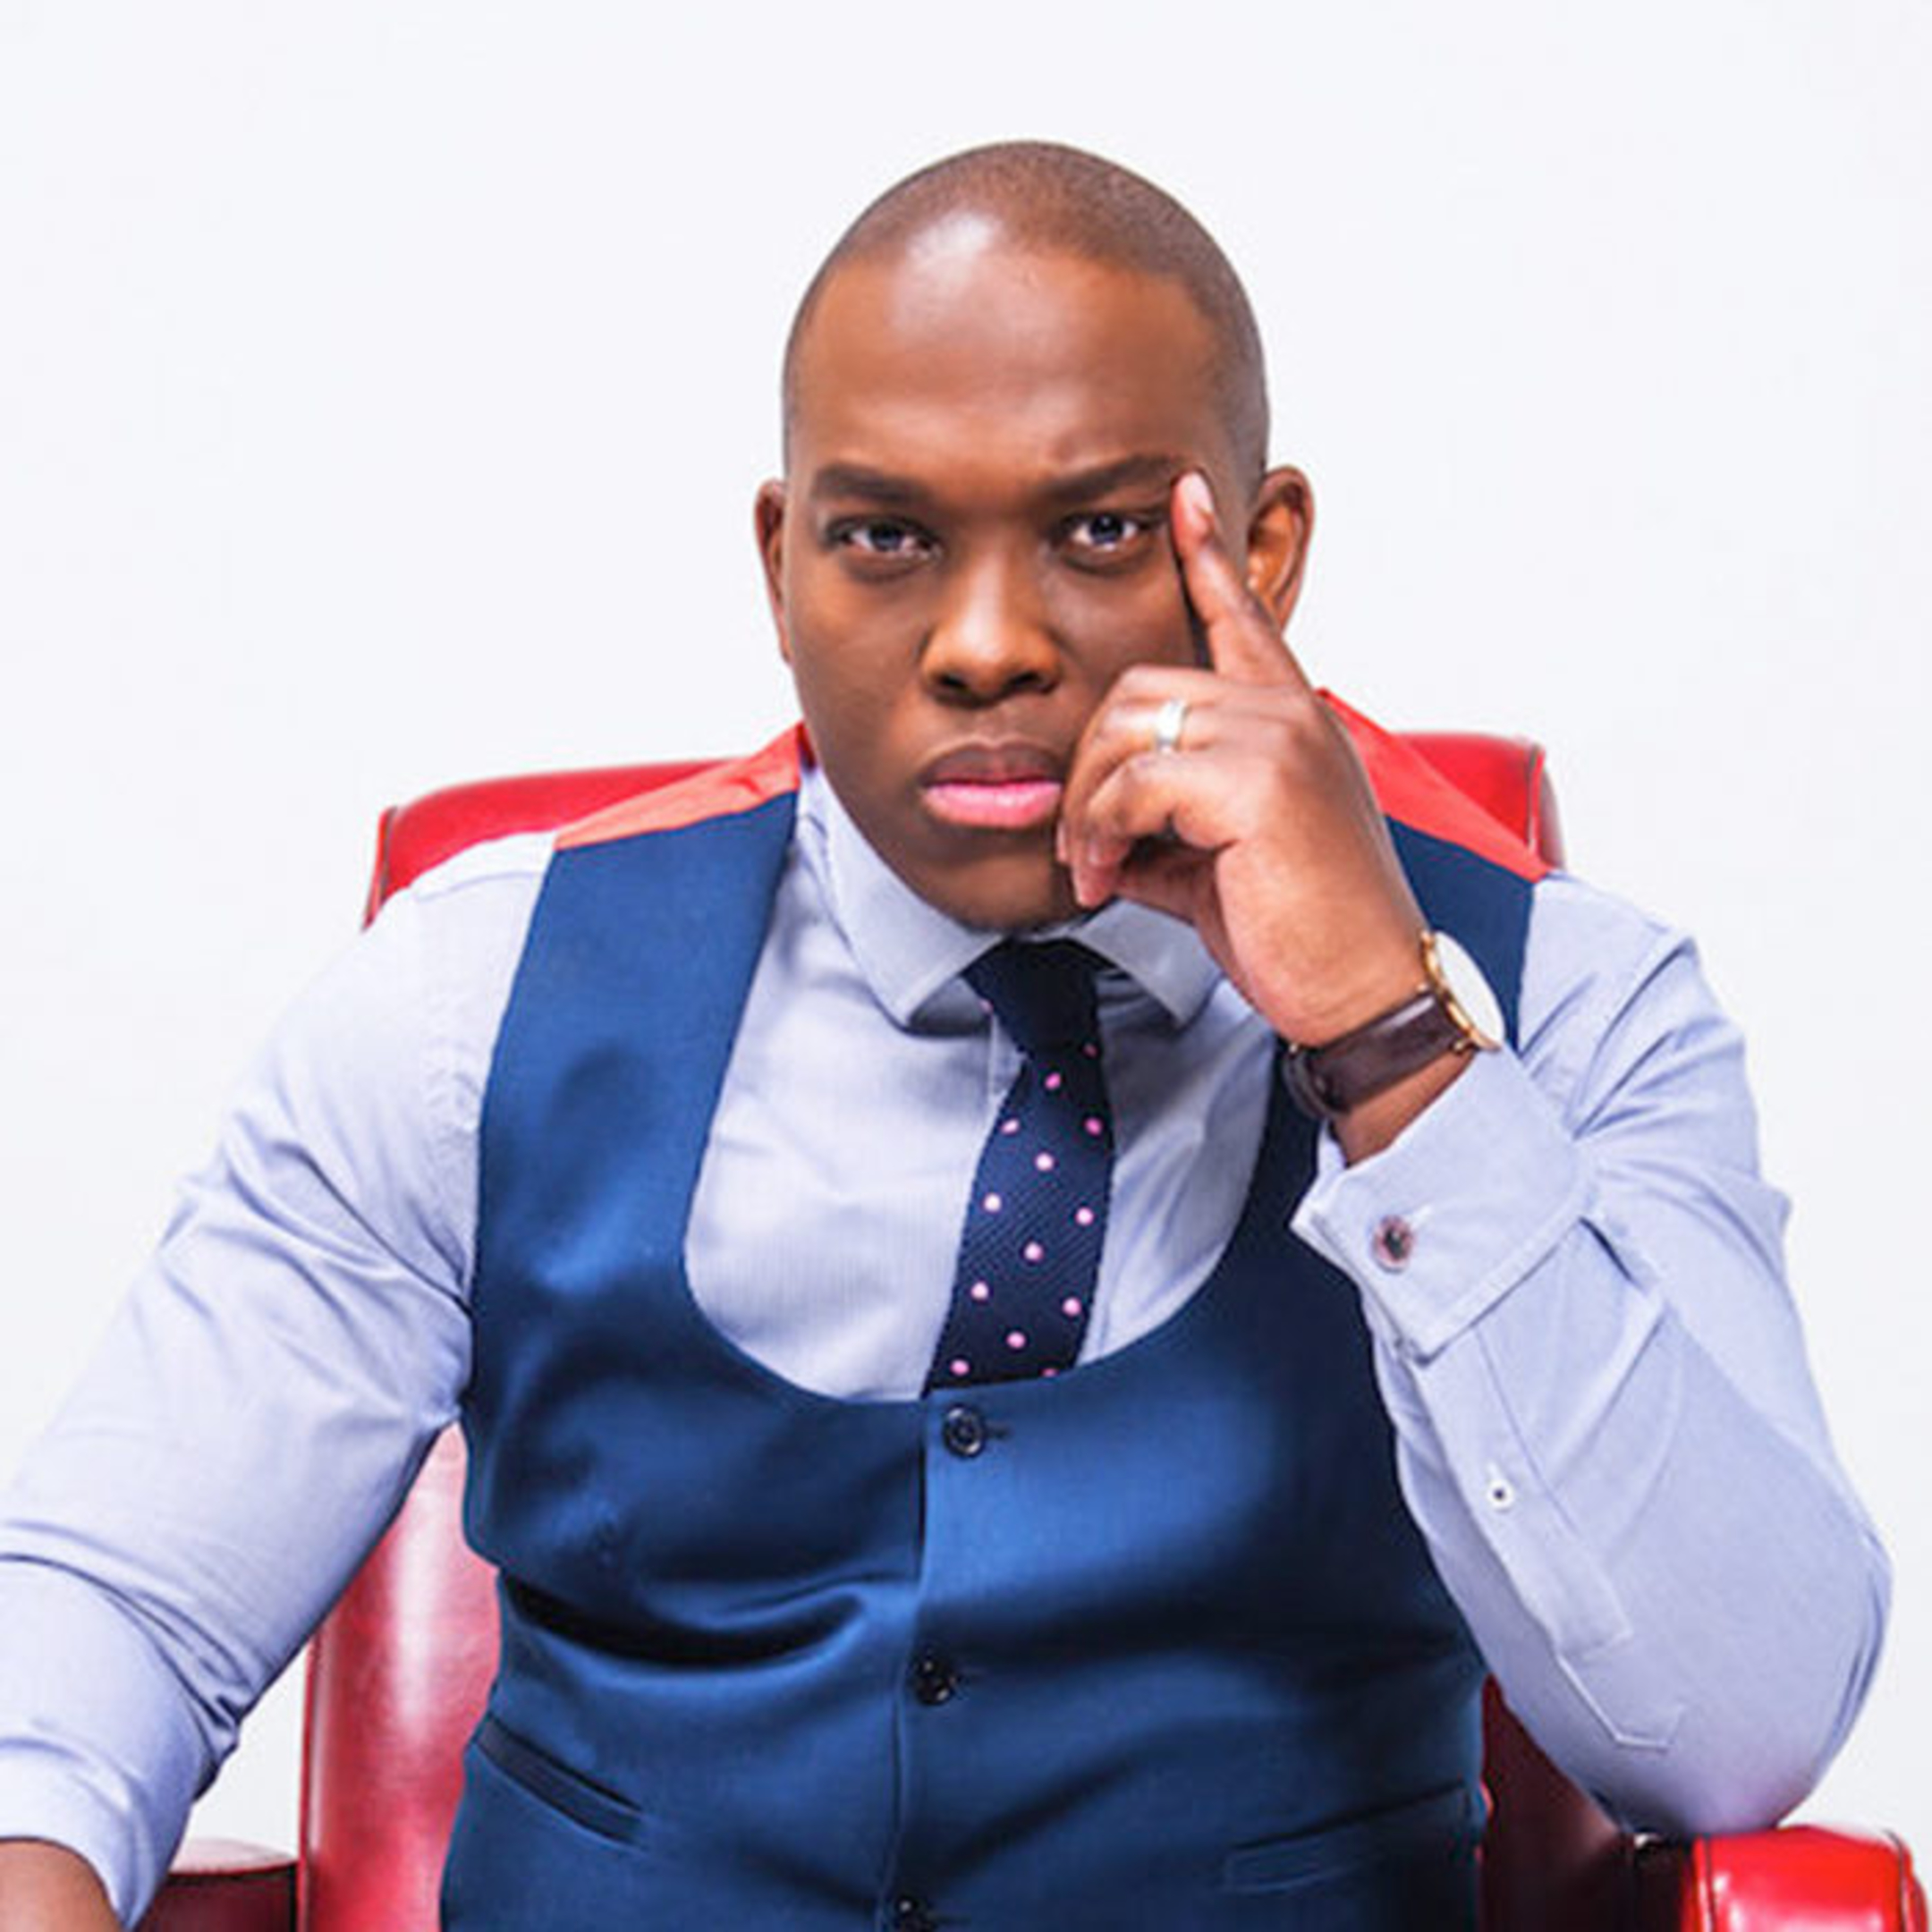 Vusi Thembekwayo Biography